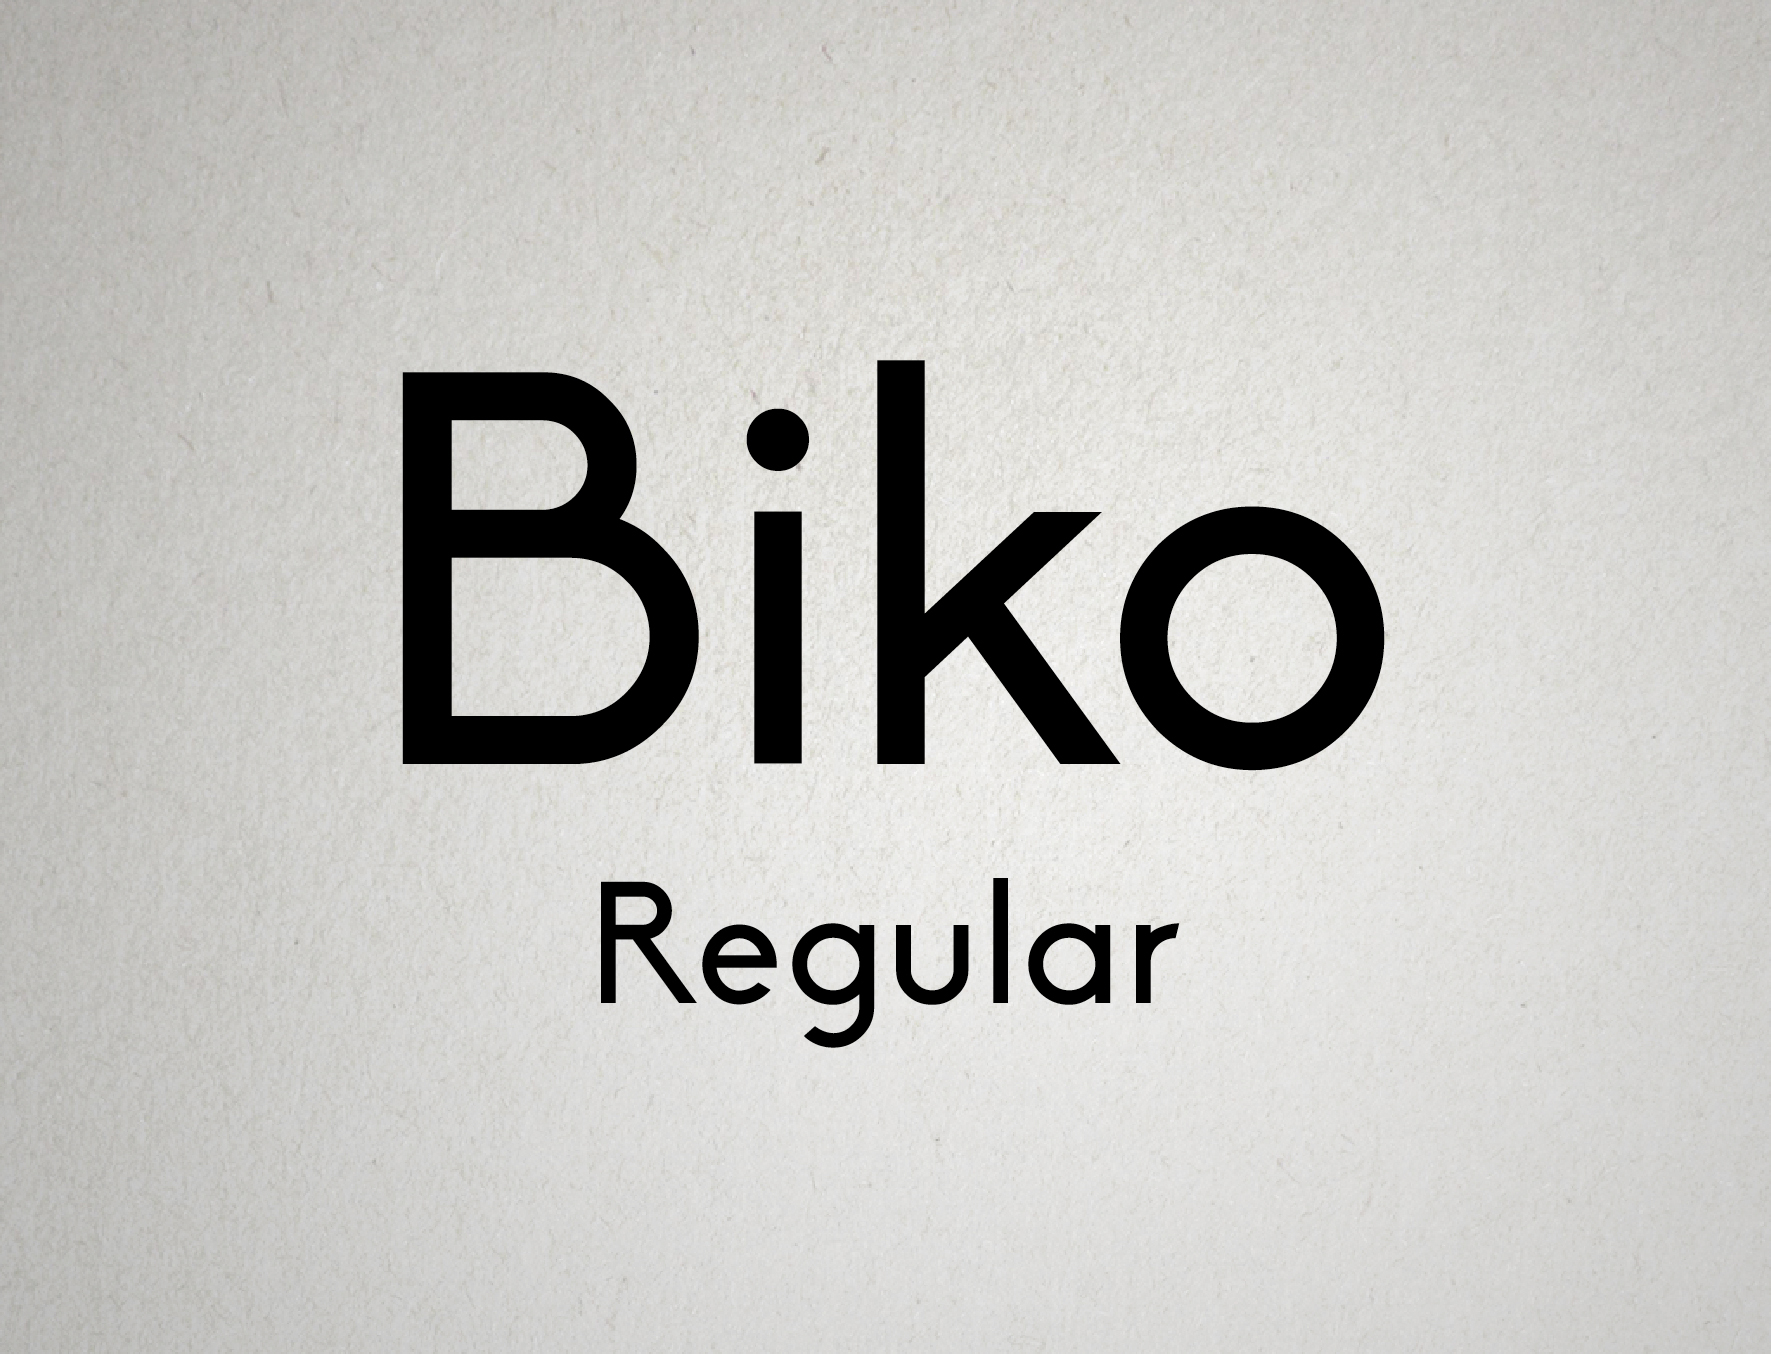 Biko Regular - Free Download